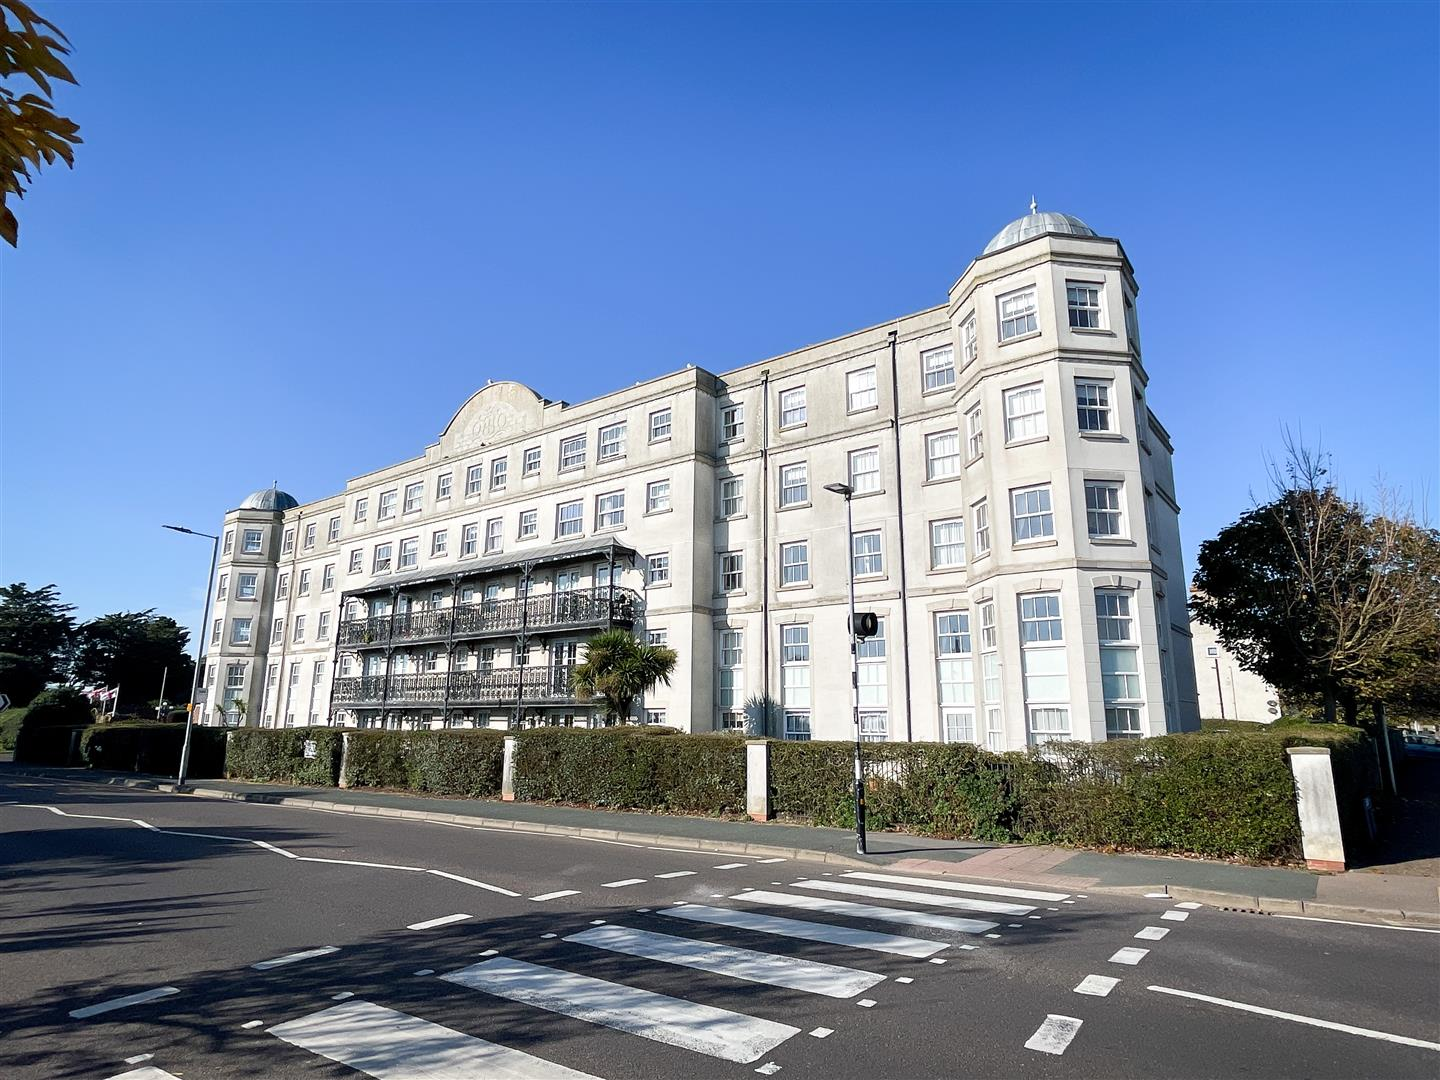 Imperial Court, Marine Parade West, Clacton-On-Sea